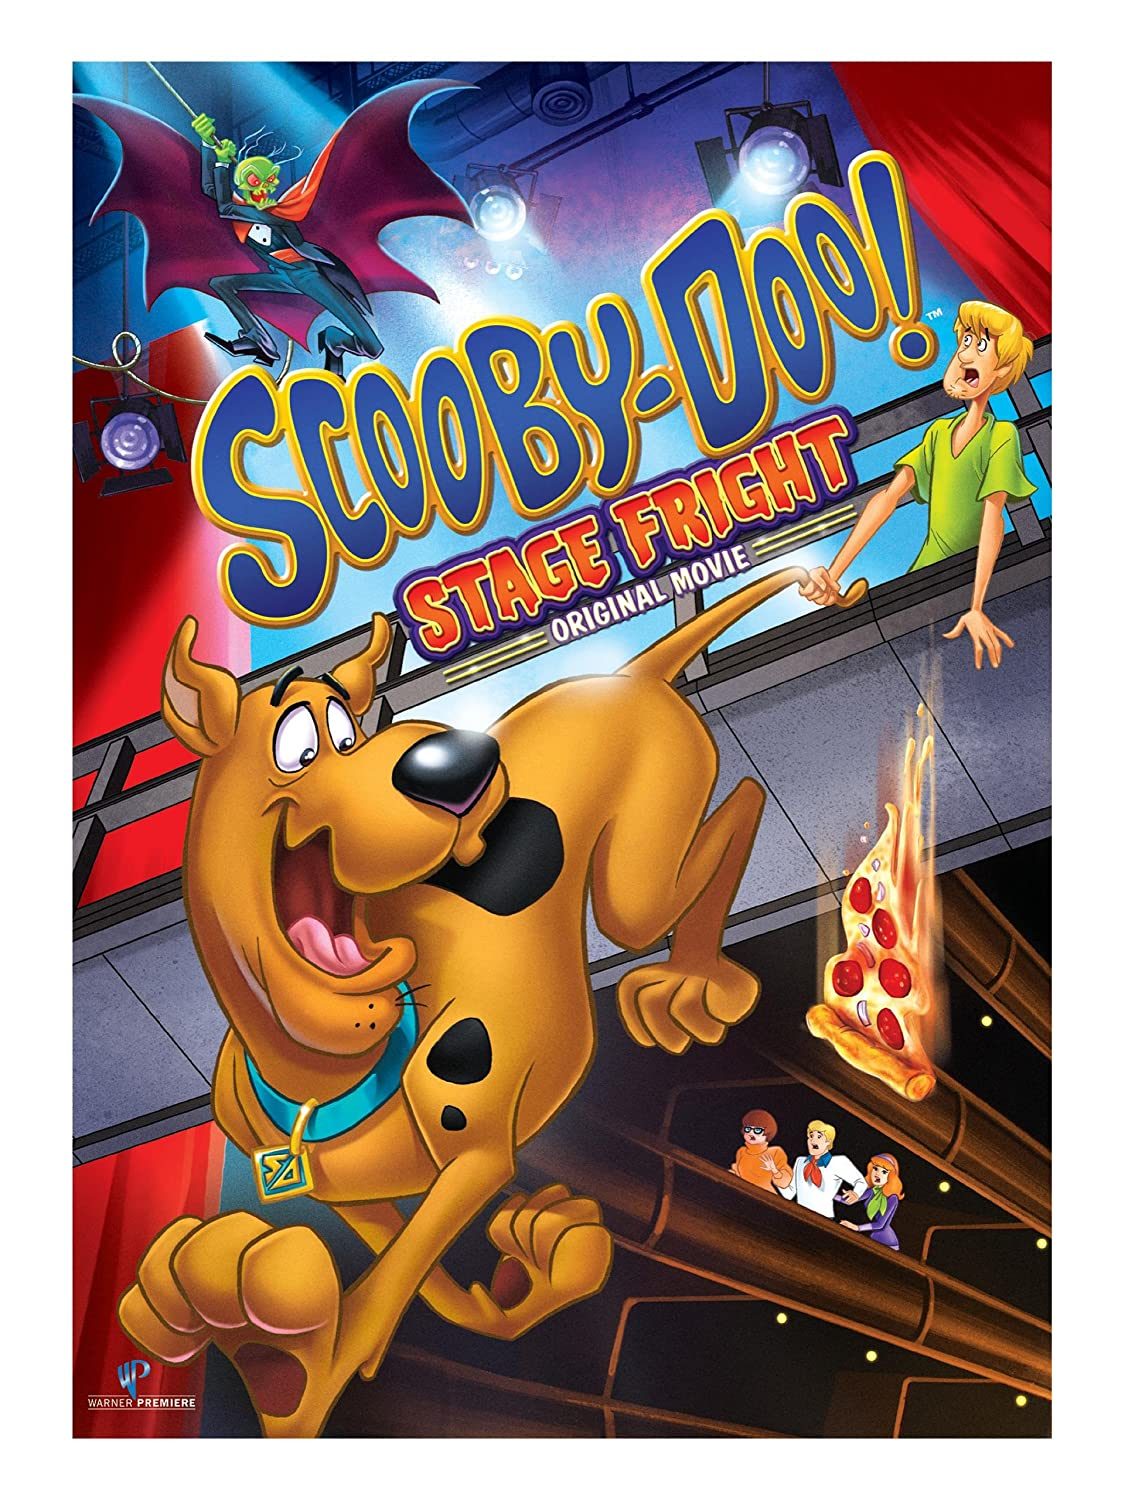 Uncategorized Scooby Doo En Streaming amazon com scooby doo stage fright various movies tv